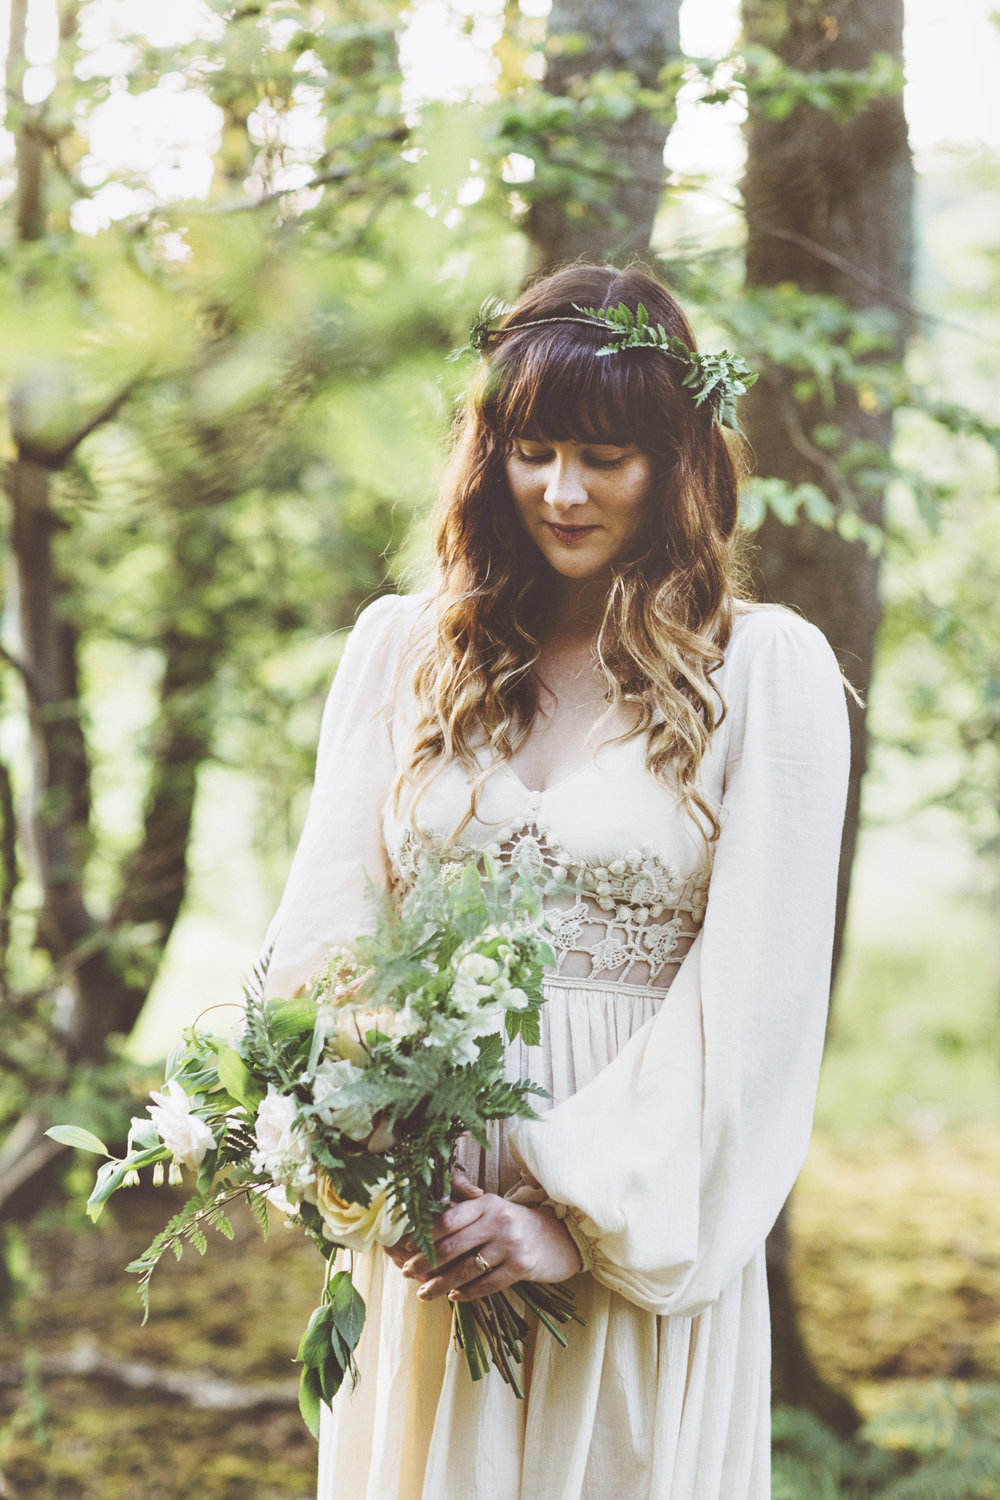 Photo:  On Love and Photography    Wedding dress:  Romany Ghani  Bride: Amity Gray